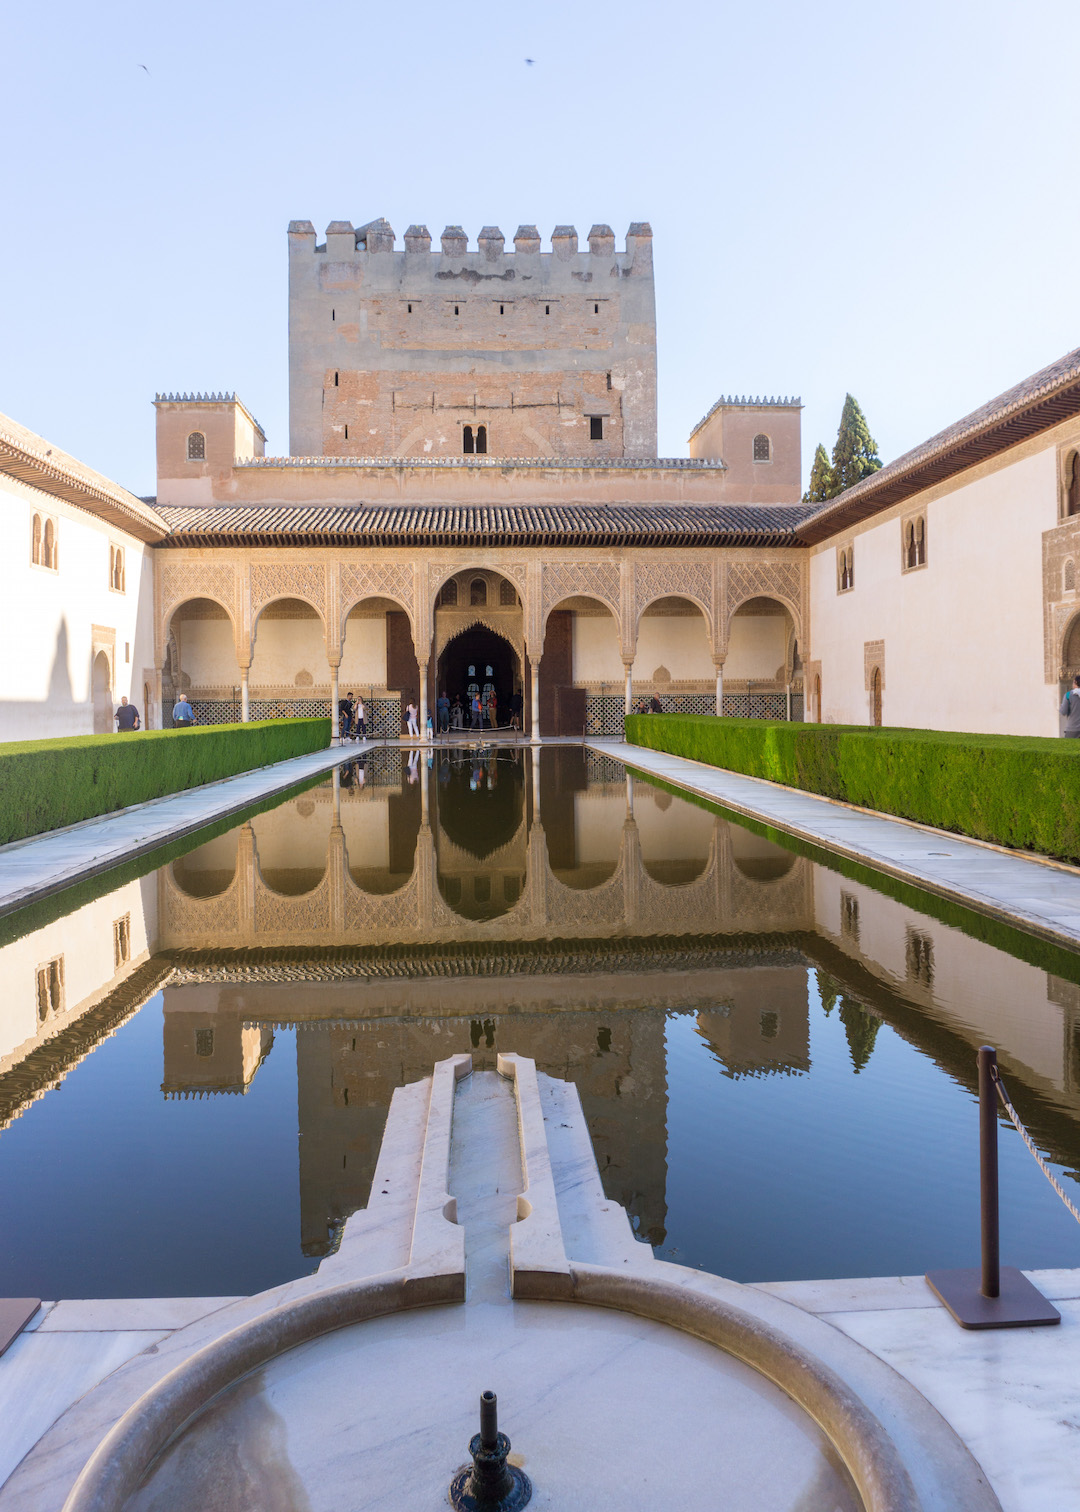 Her_Travel_Edit_Granada_Alhambra_Nasrid_Palace_Courtyard